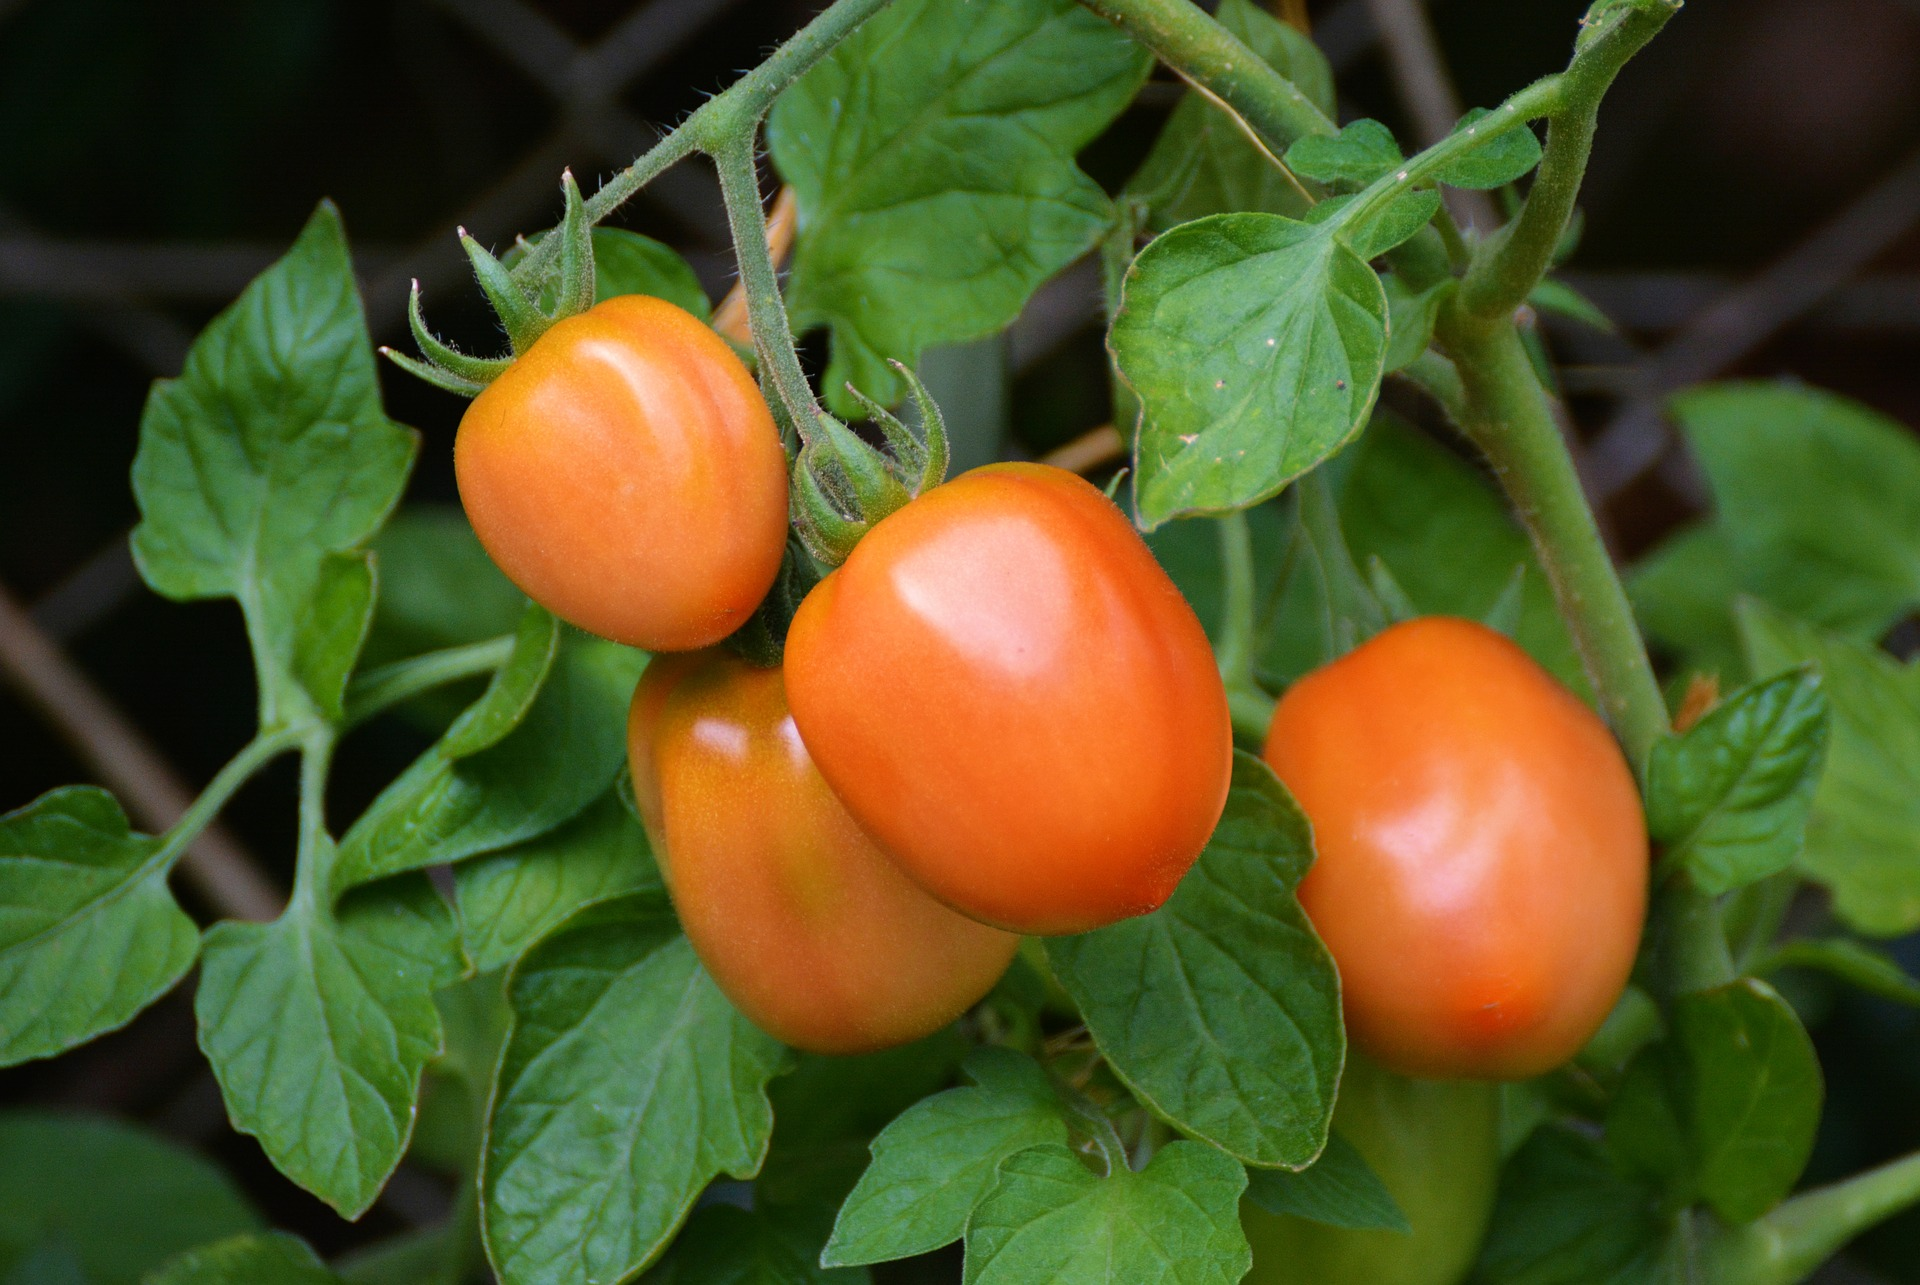 All You Need to Know About Those Weird Little Tomato Suckers